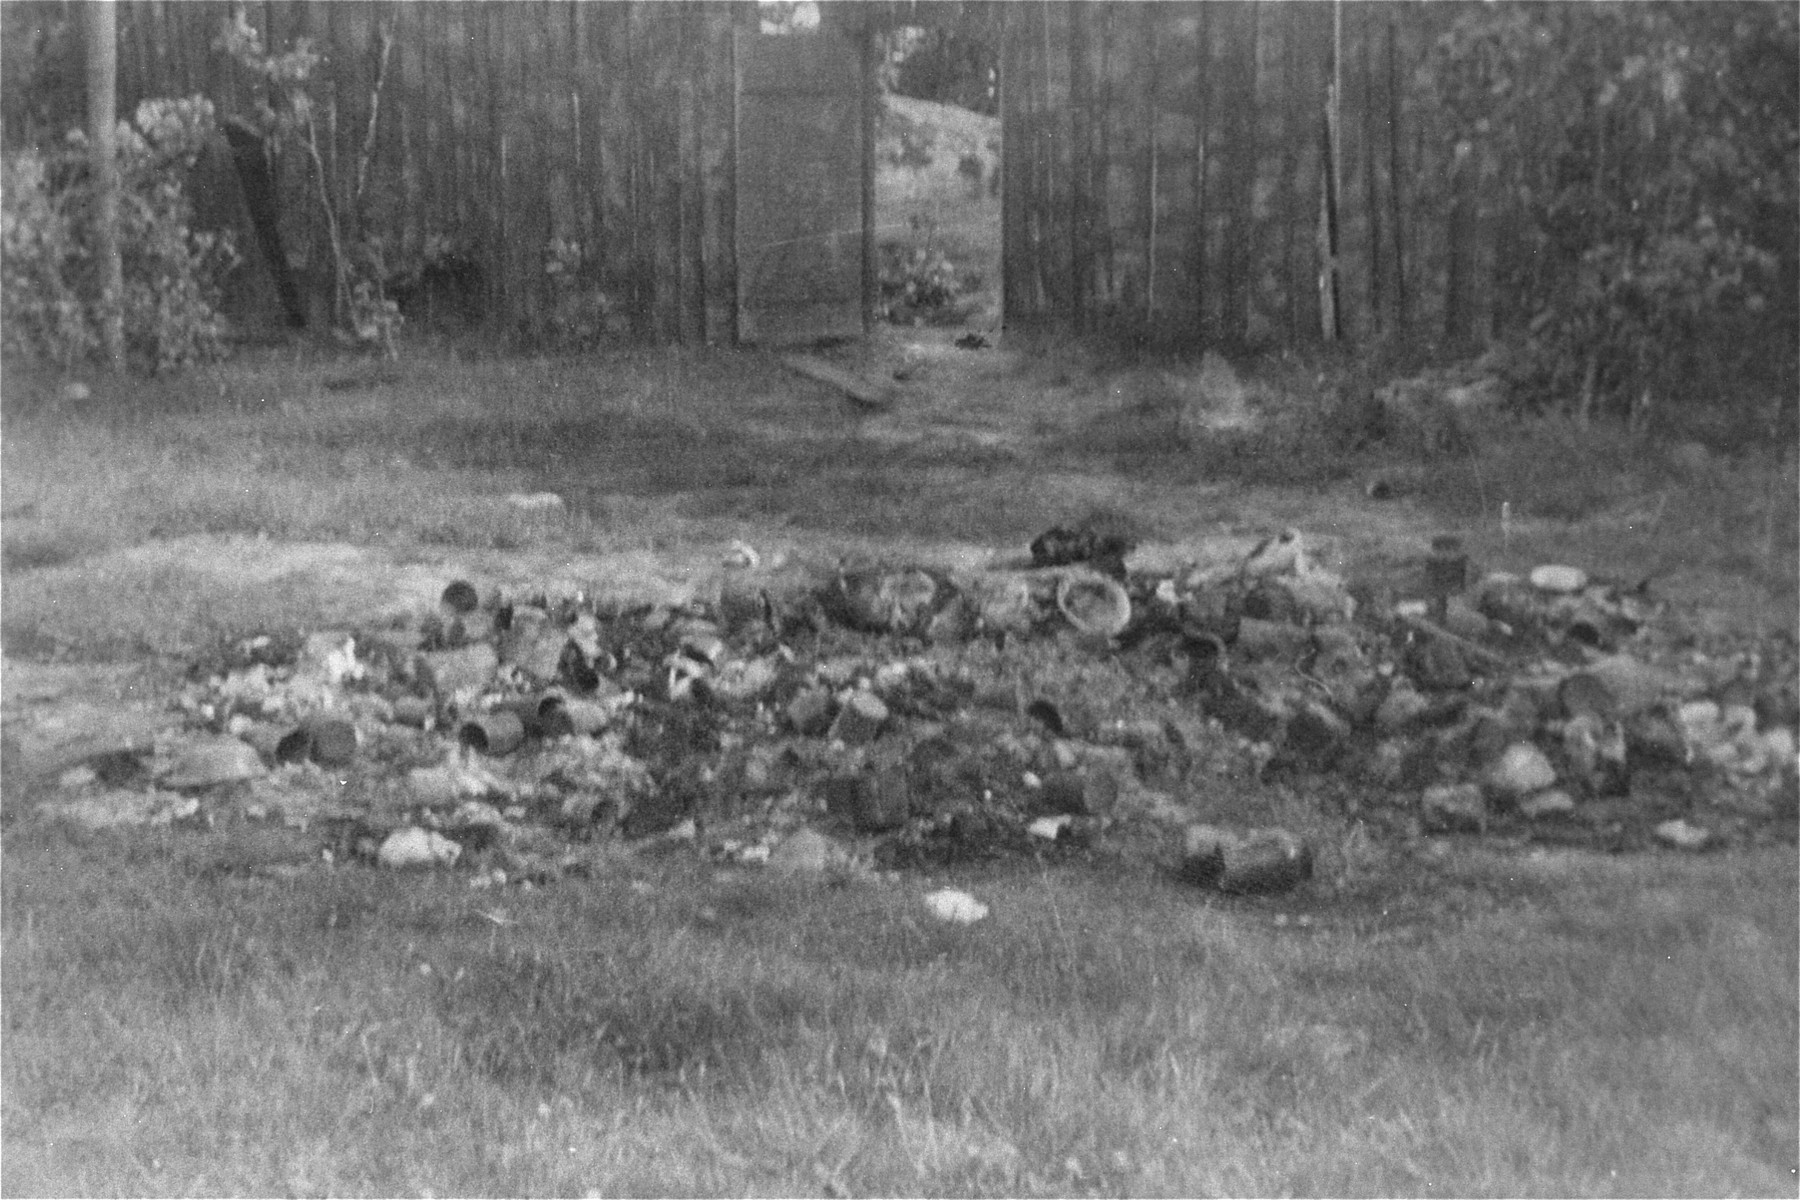 The personal effects of prisoners killed by the Germans lie in a pile on the grass in the Maly Trostinets concentration camp.